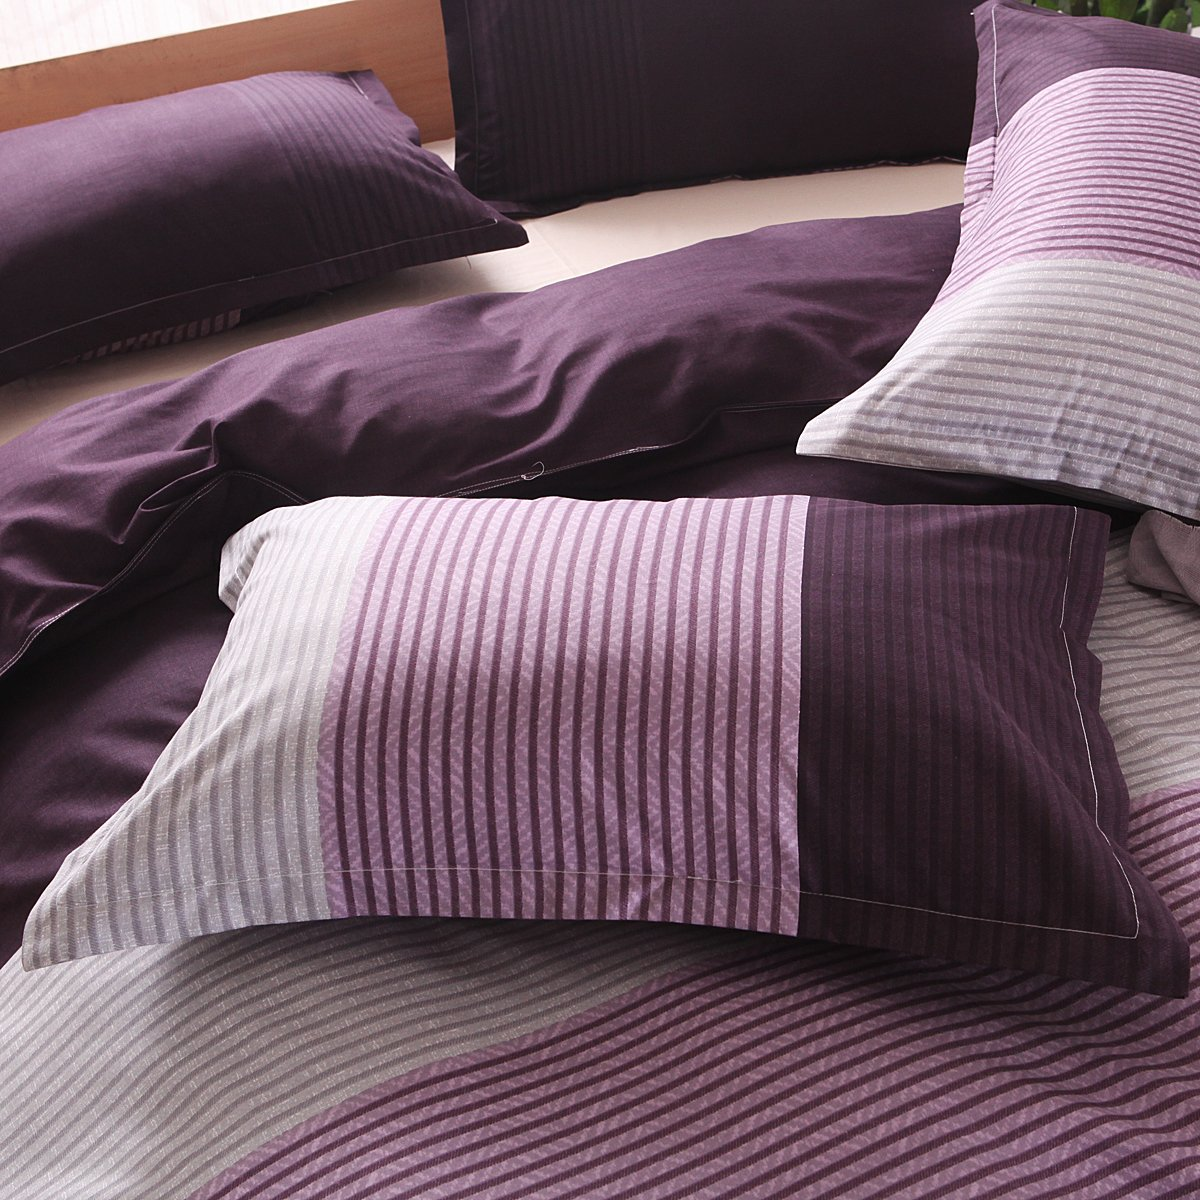 Tenghe Stripe Colorblock Print 3 Pcs Duvet Cover Sets Soft Reversible Bedding Cover Brushed Microfiber Full Queen Size Queen,Purple Stripe